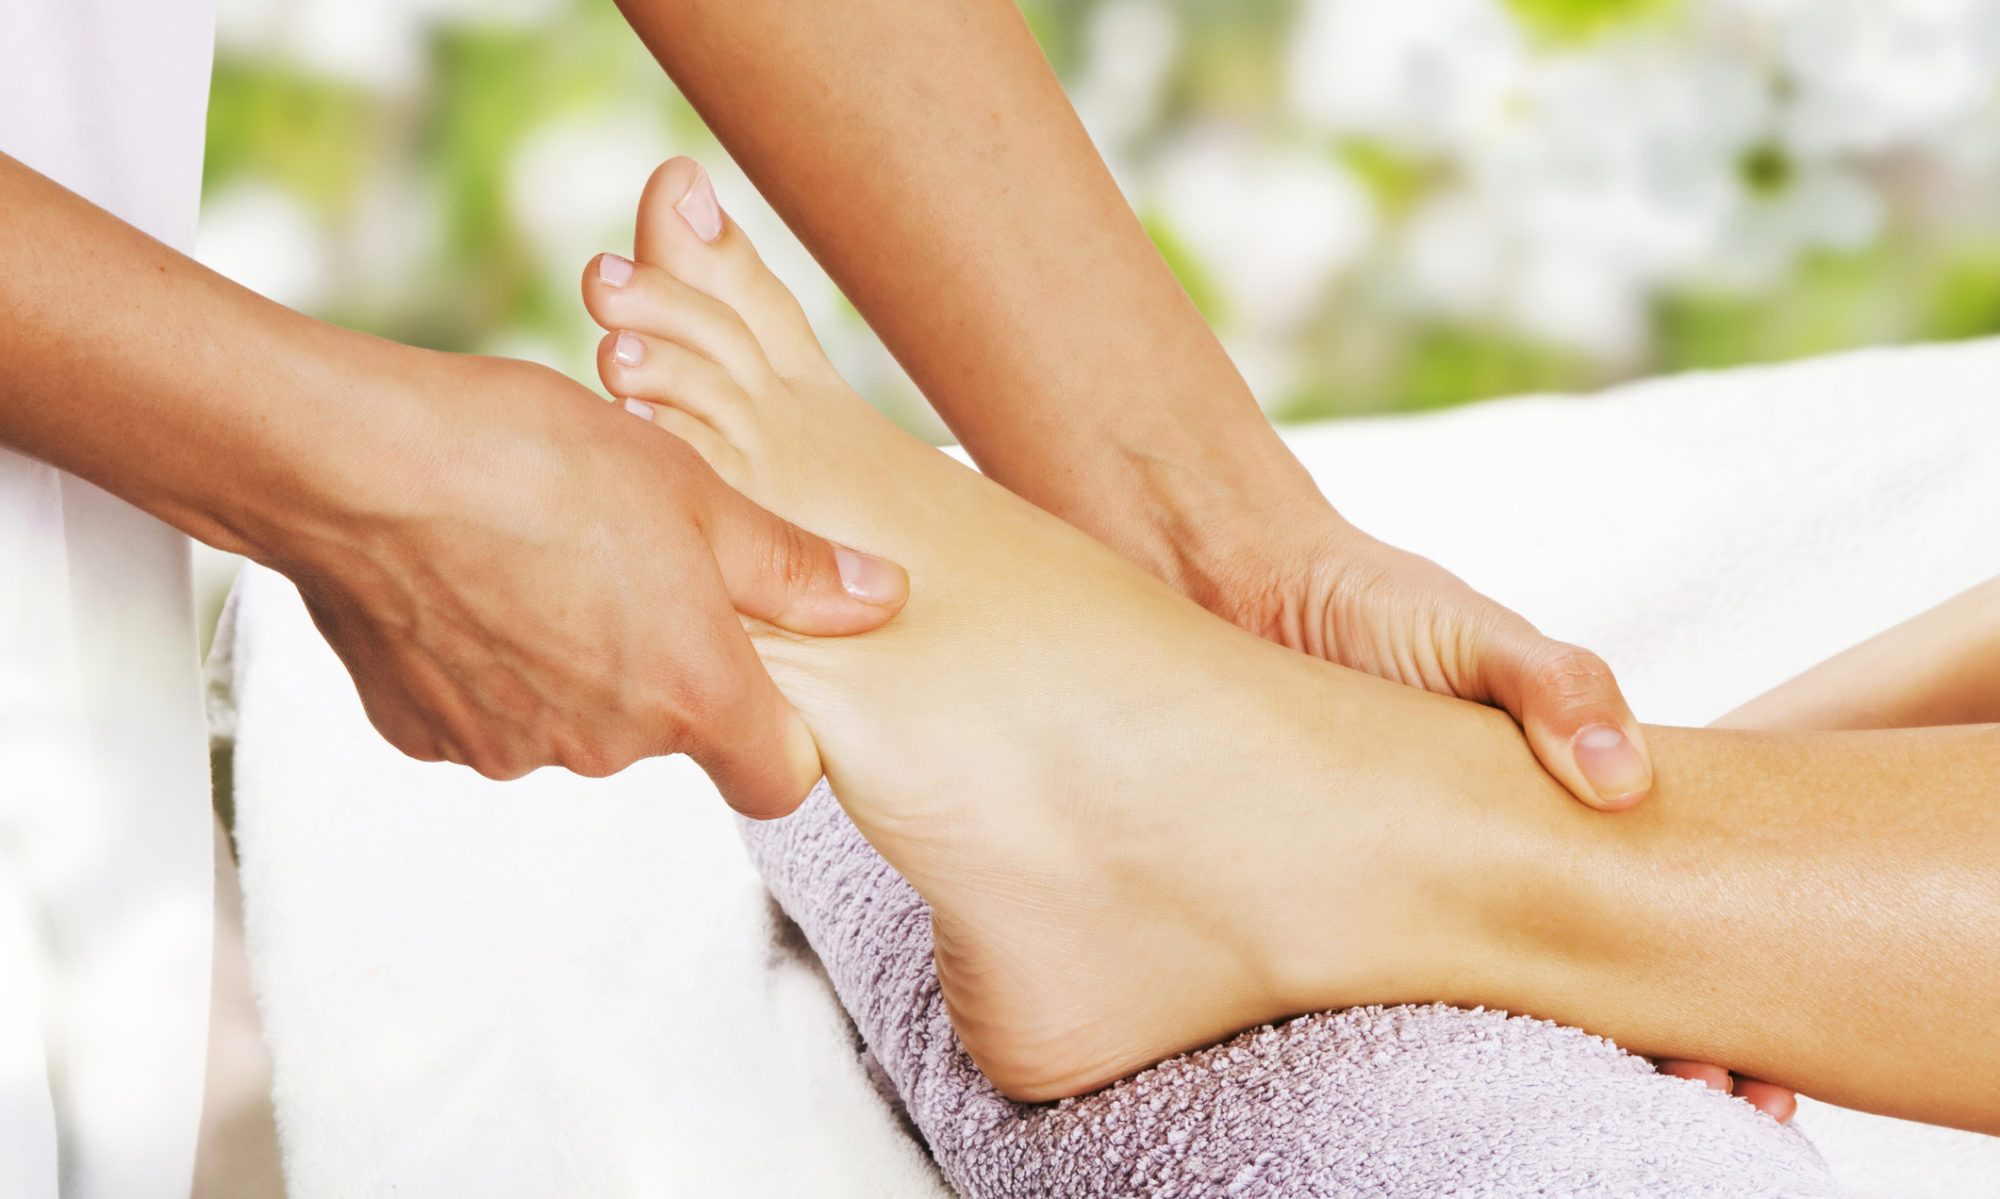 Lauren Slade : Reflexology Specialist | News, Research, Resources & Education